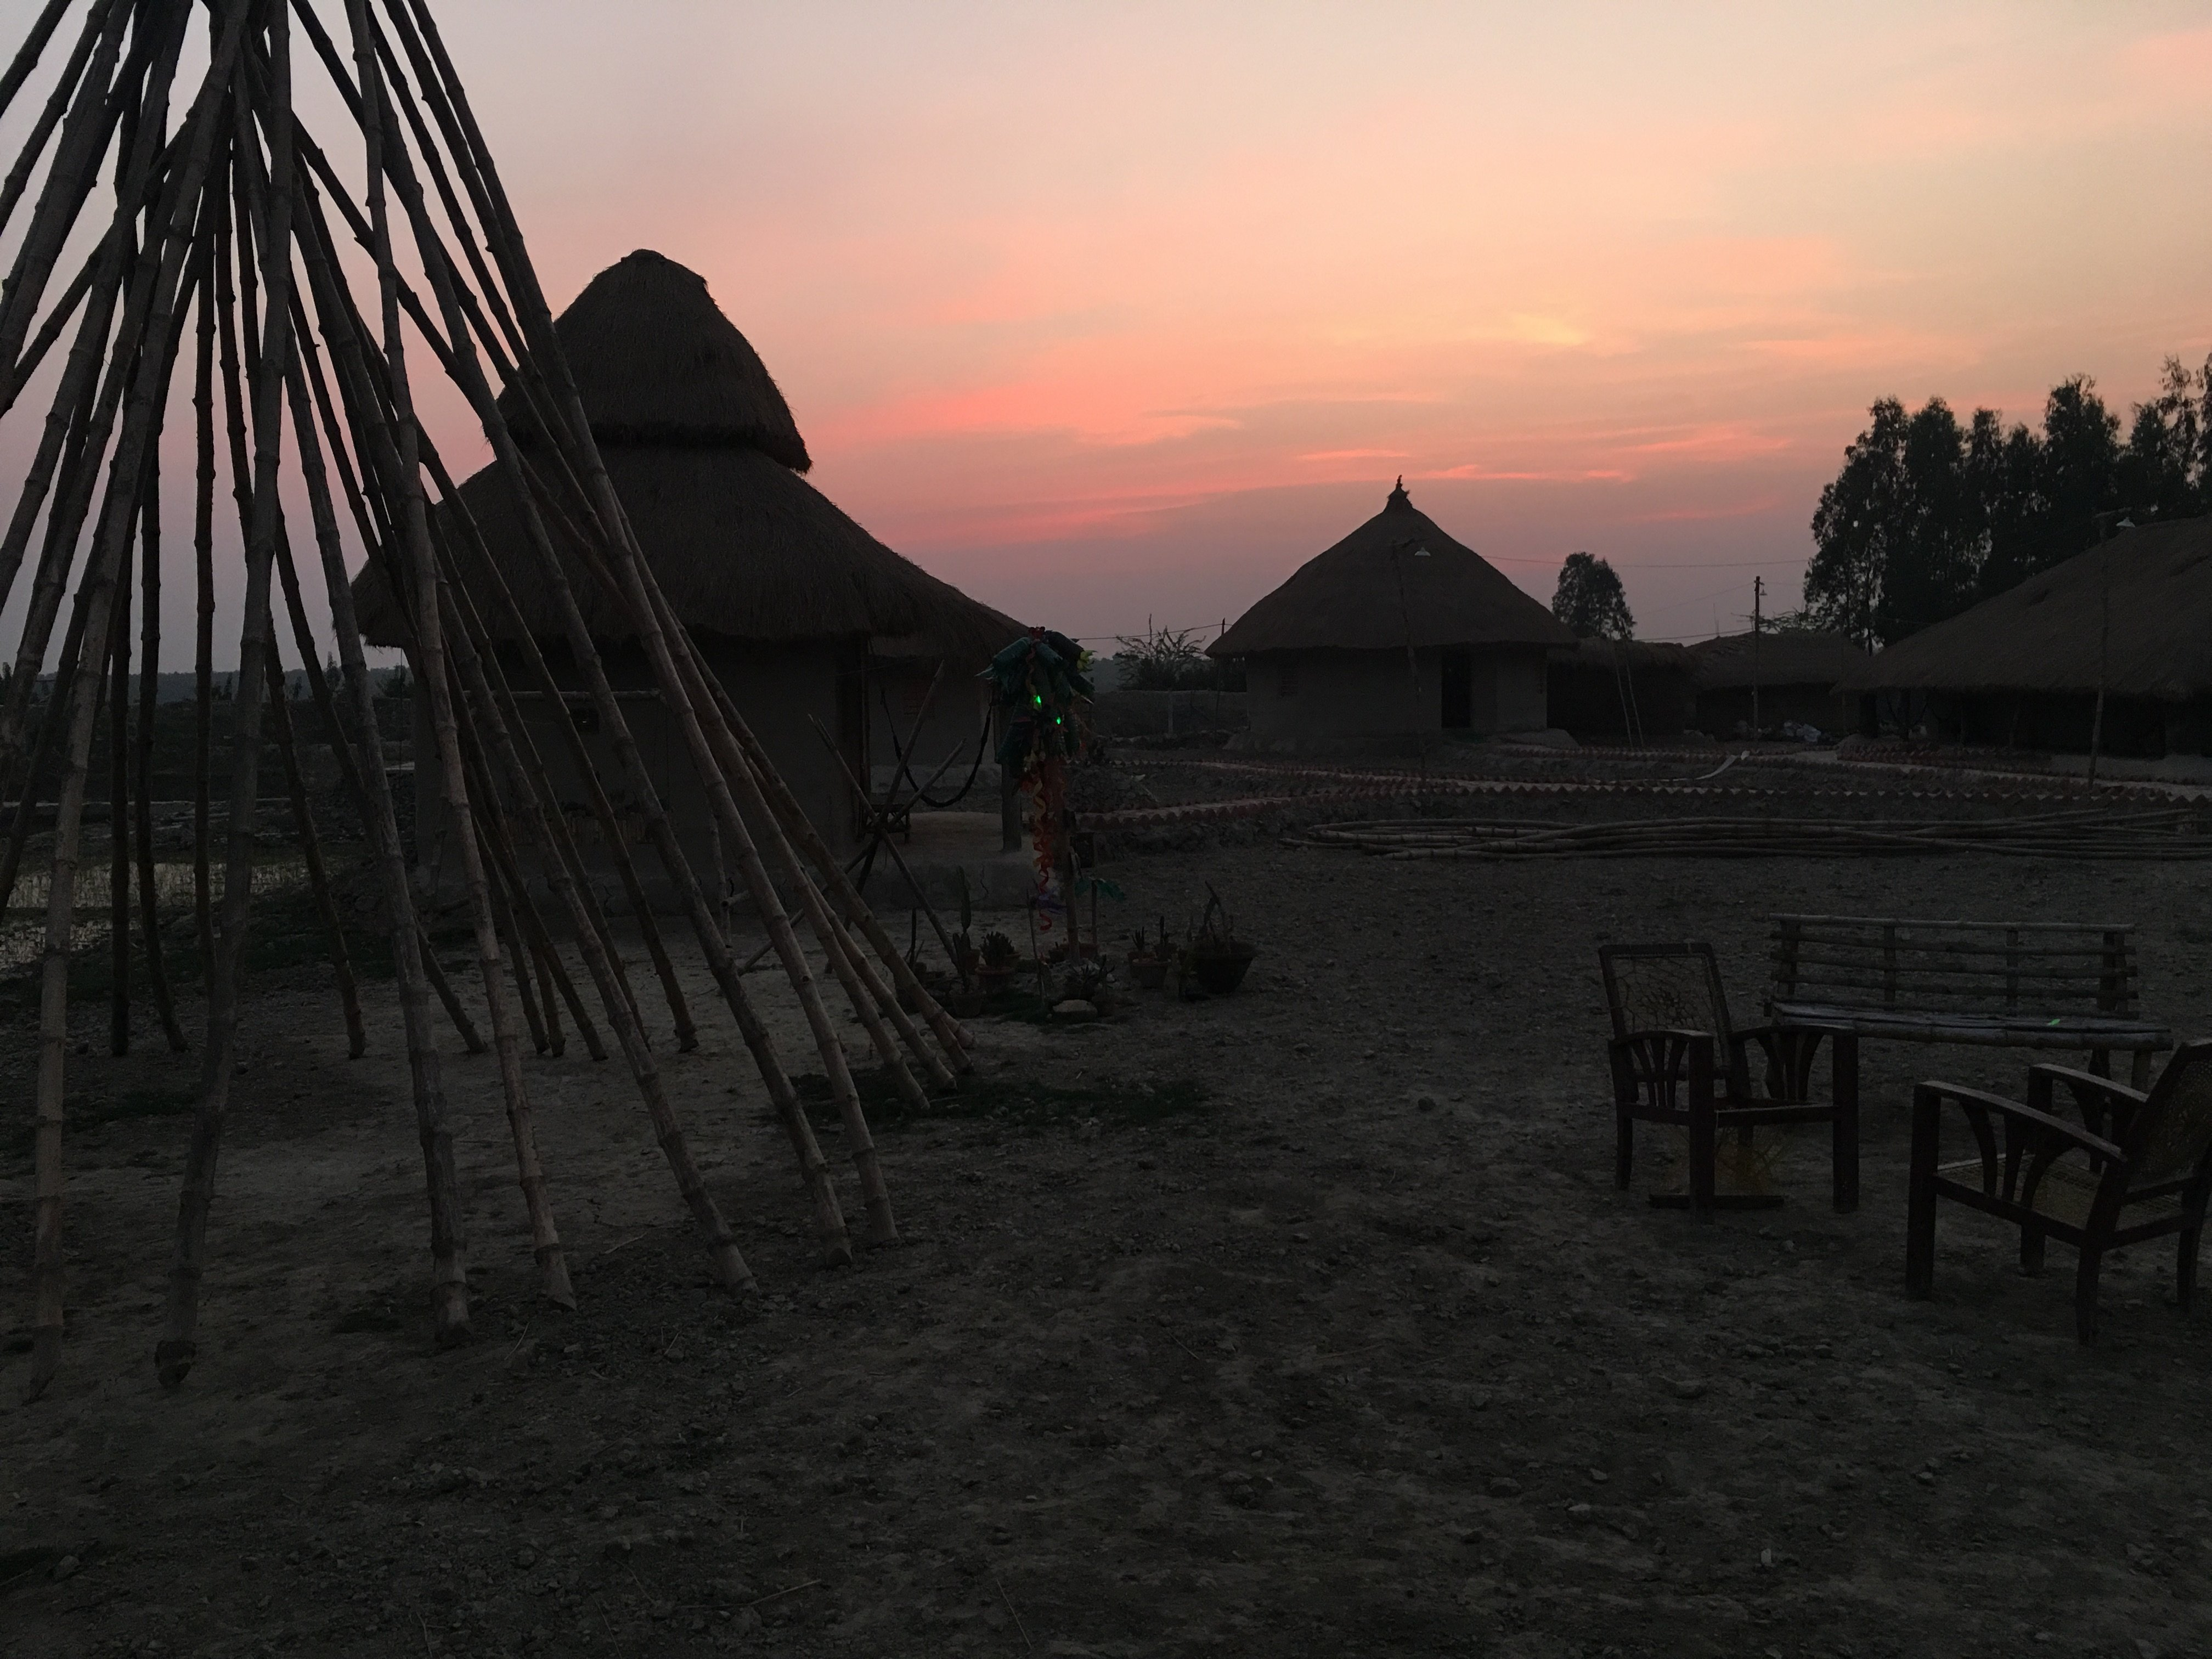 Sun setting behind the ecovillage on